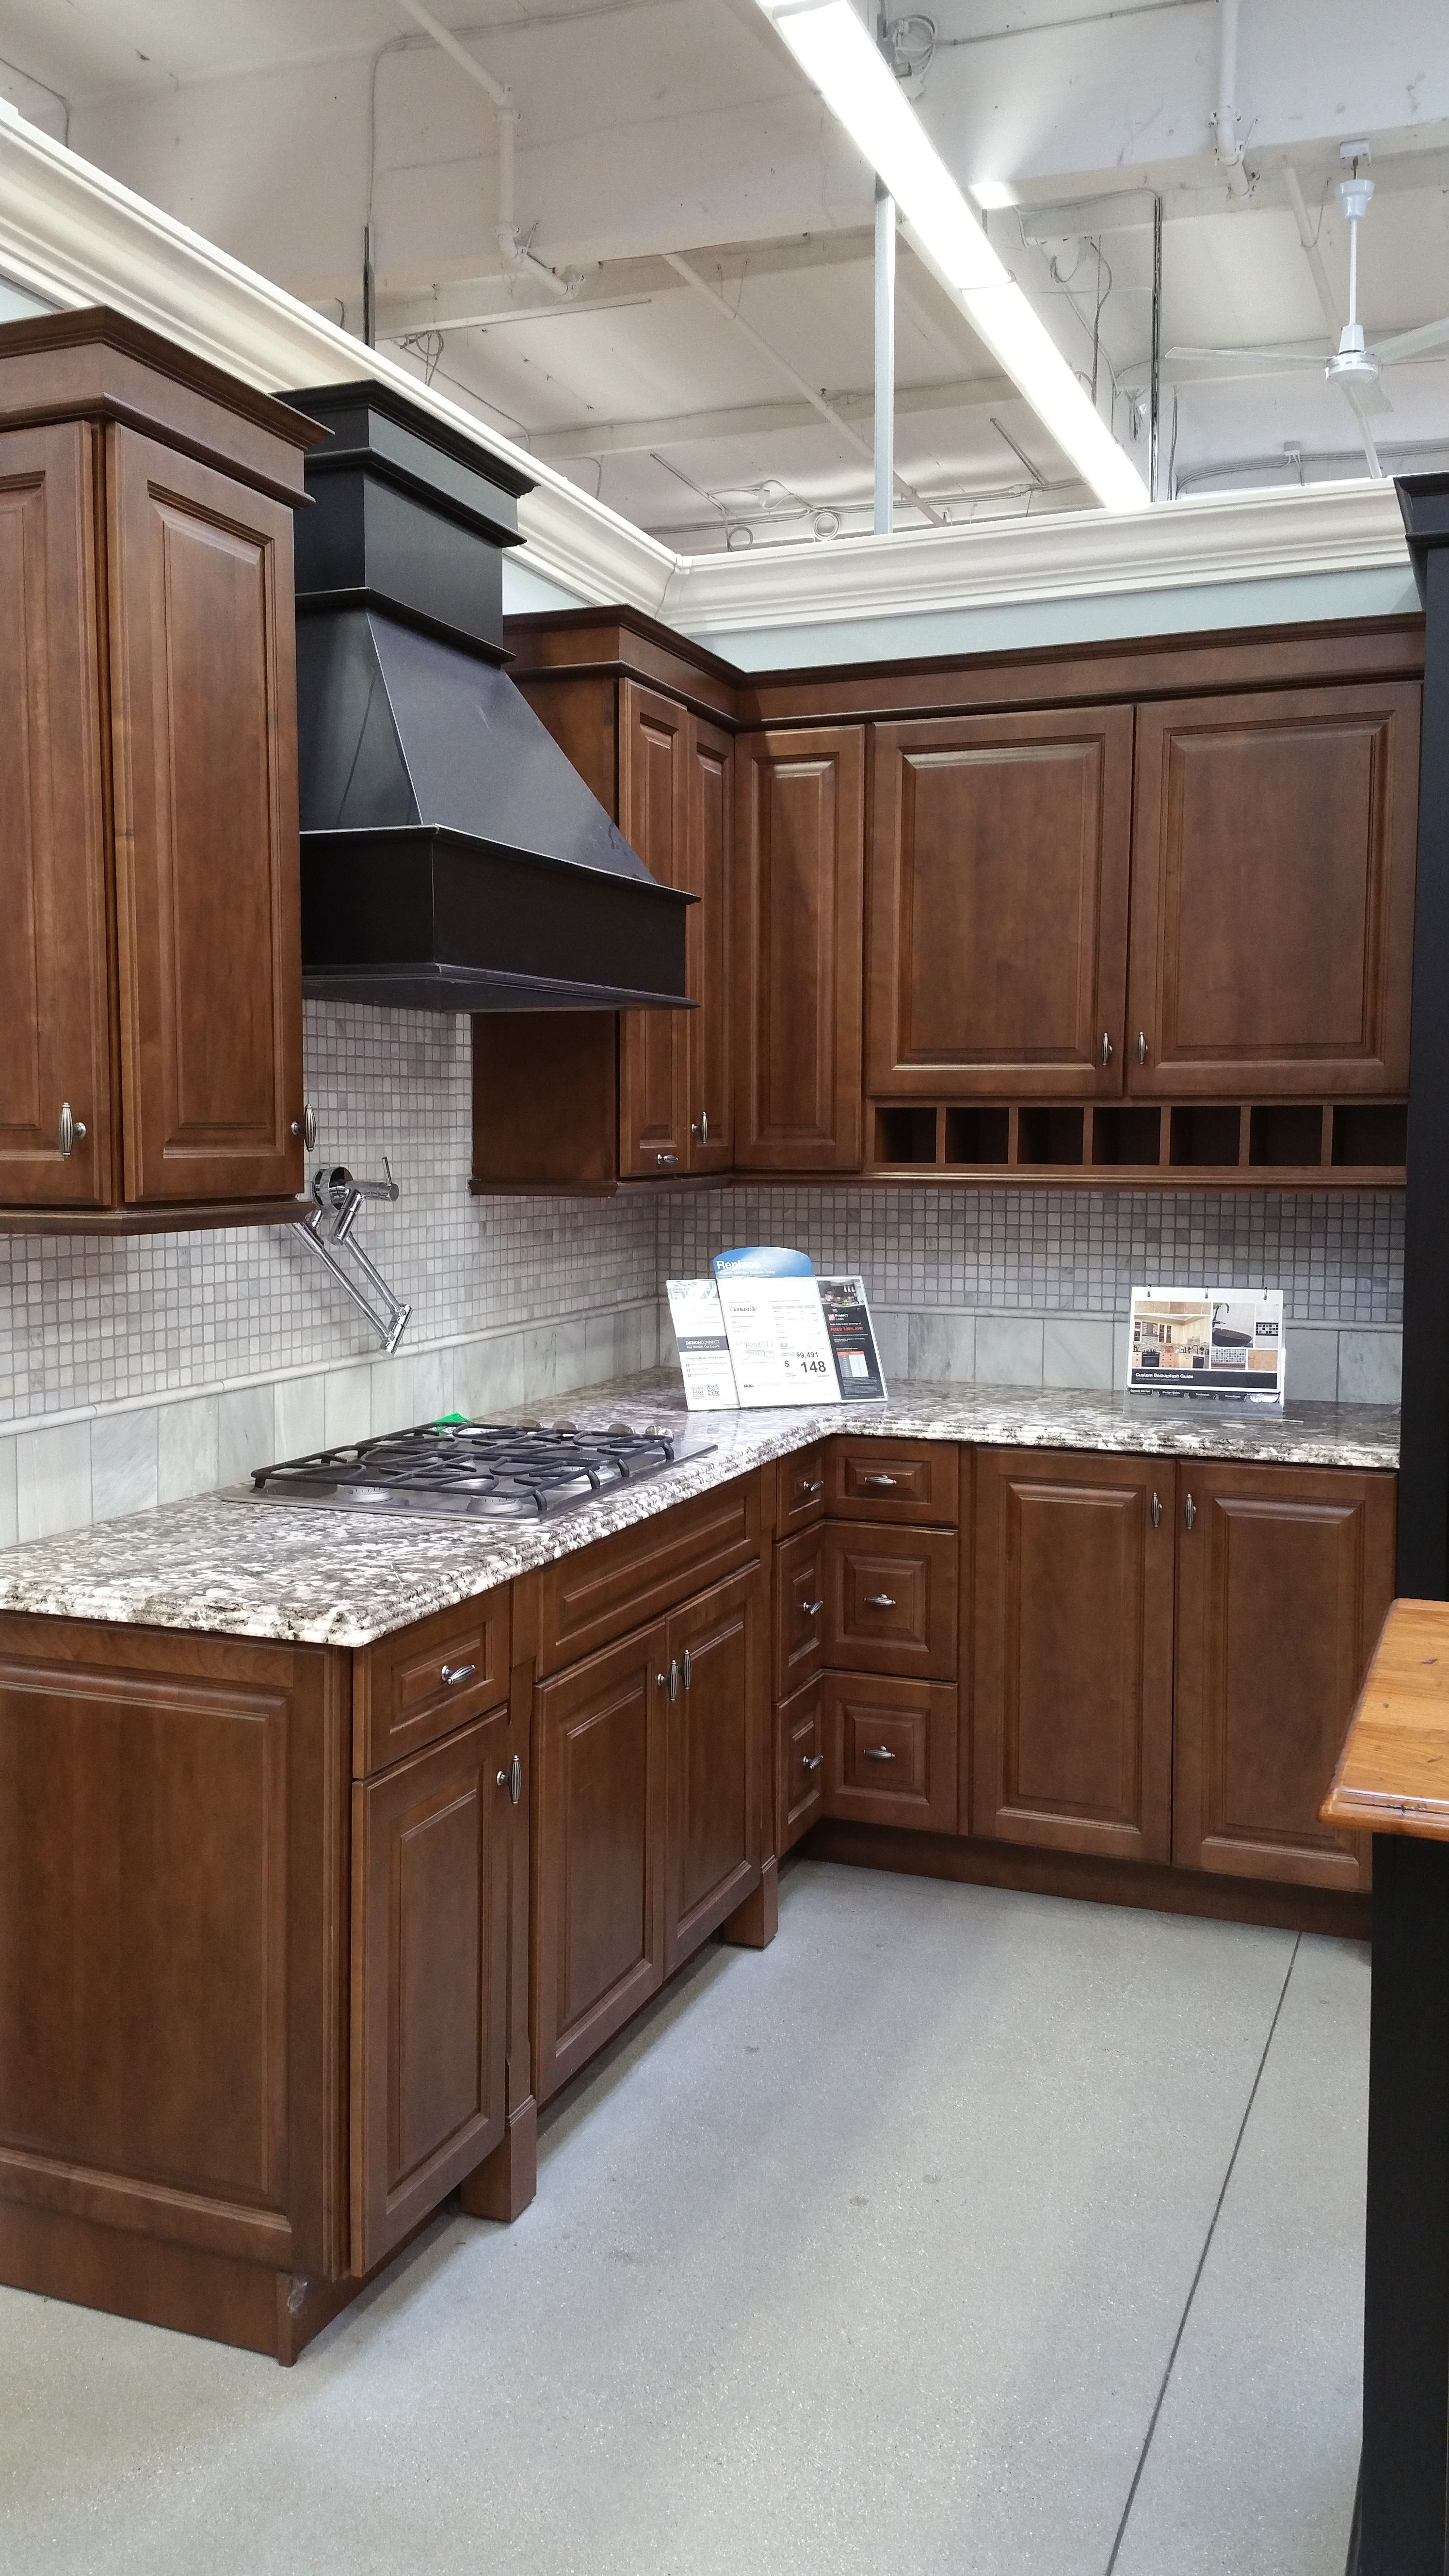 How To Clean Quartz Countertops Stains Thomasville Quotplaza Quot Maple Stained Quotclove Quot My Cabinets